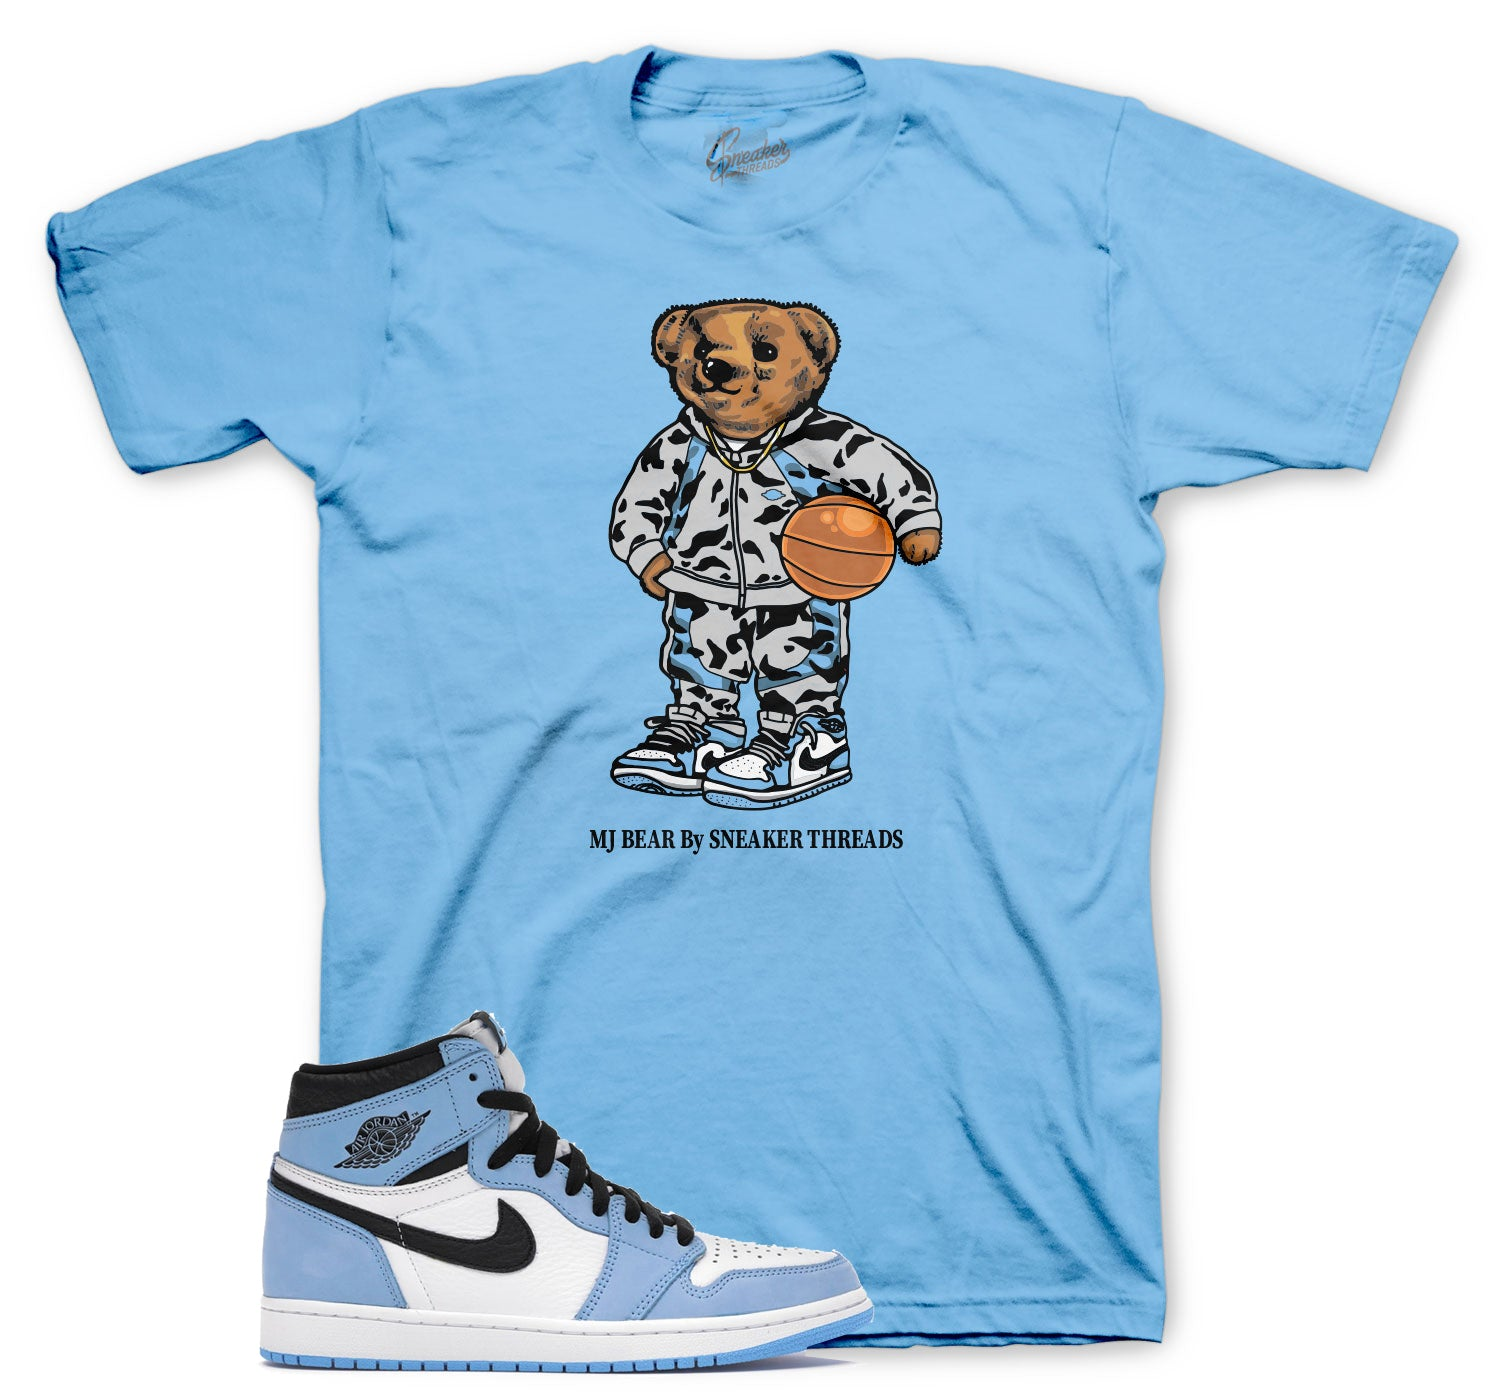 Mens Clothing matches with jordan 1 university blue sneaker collection perfectly